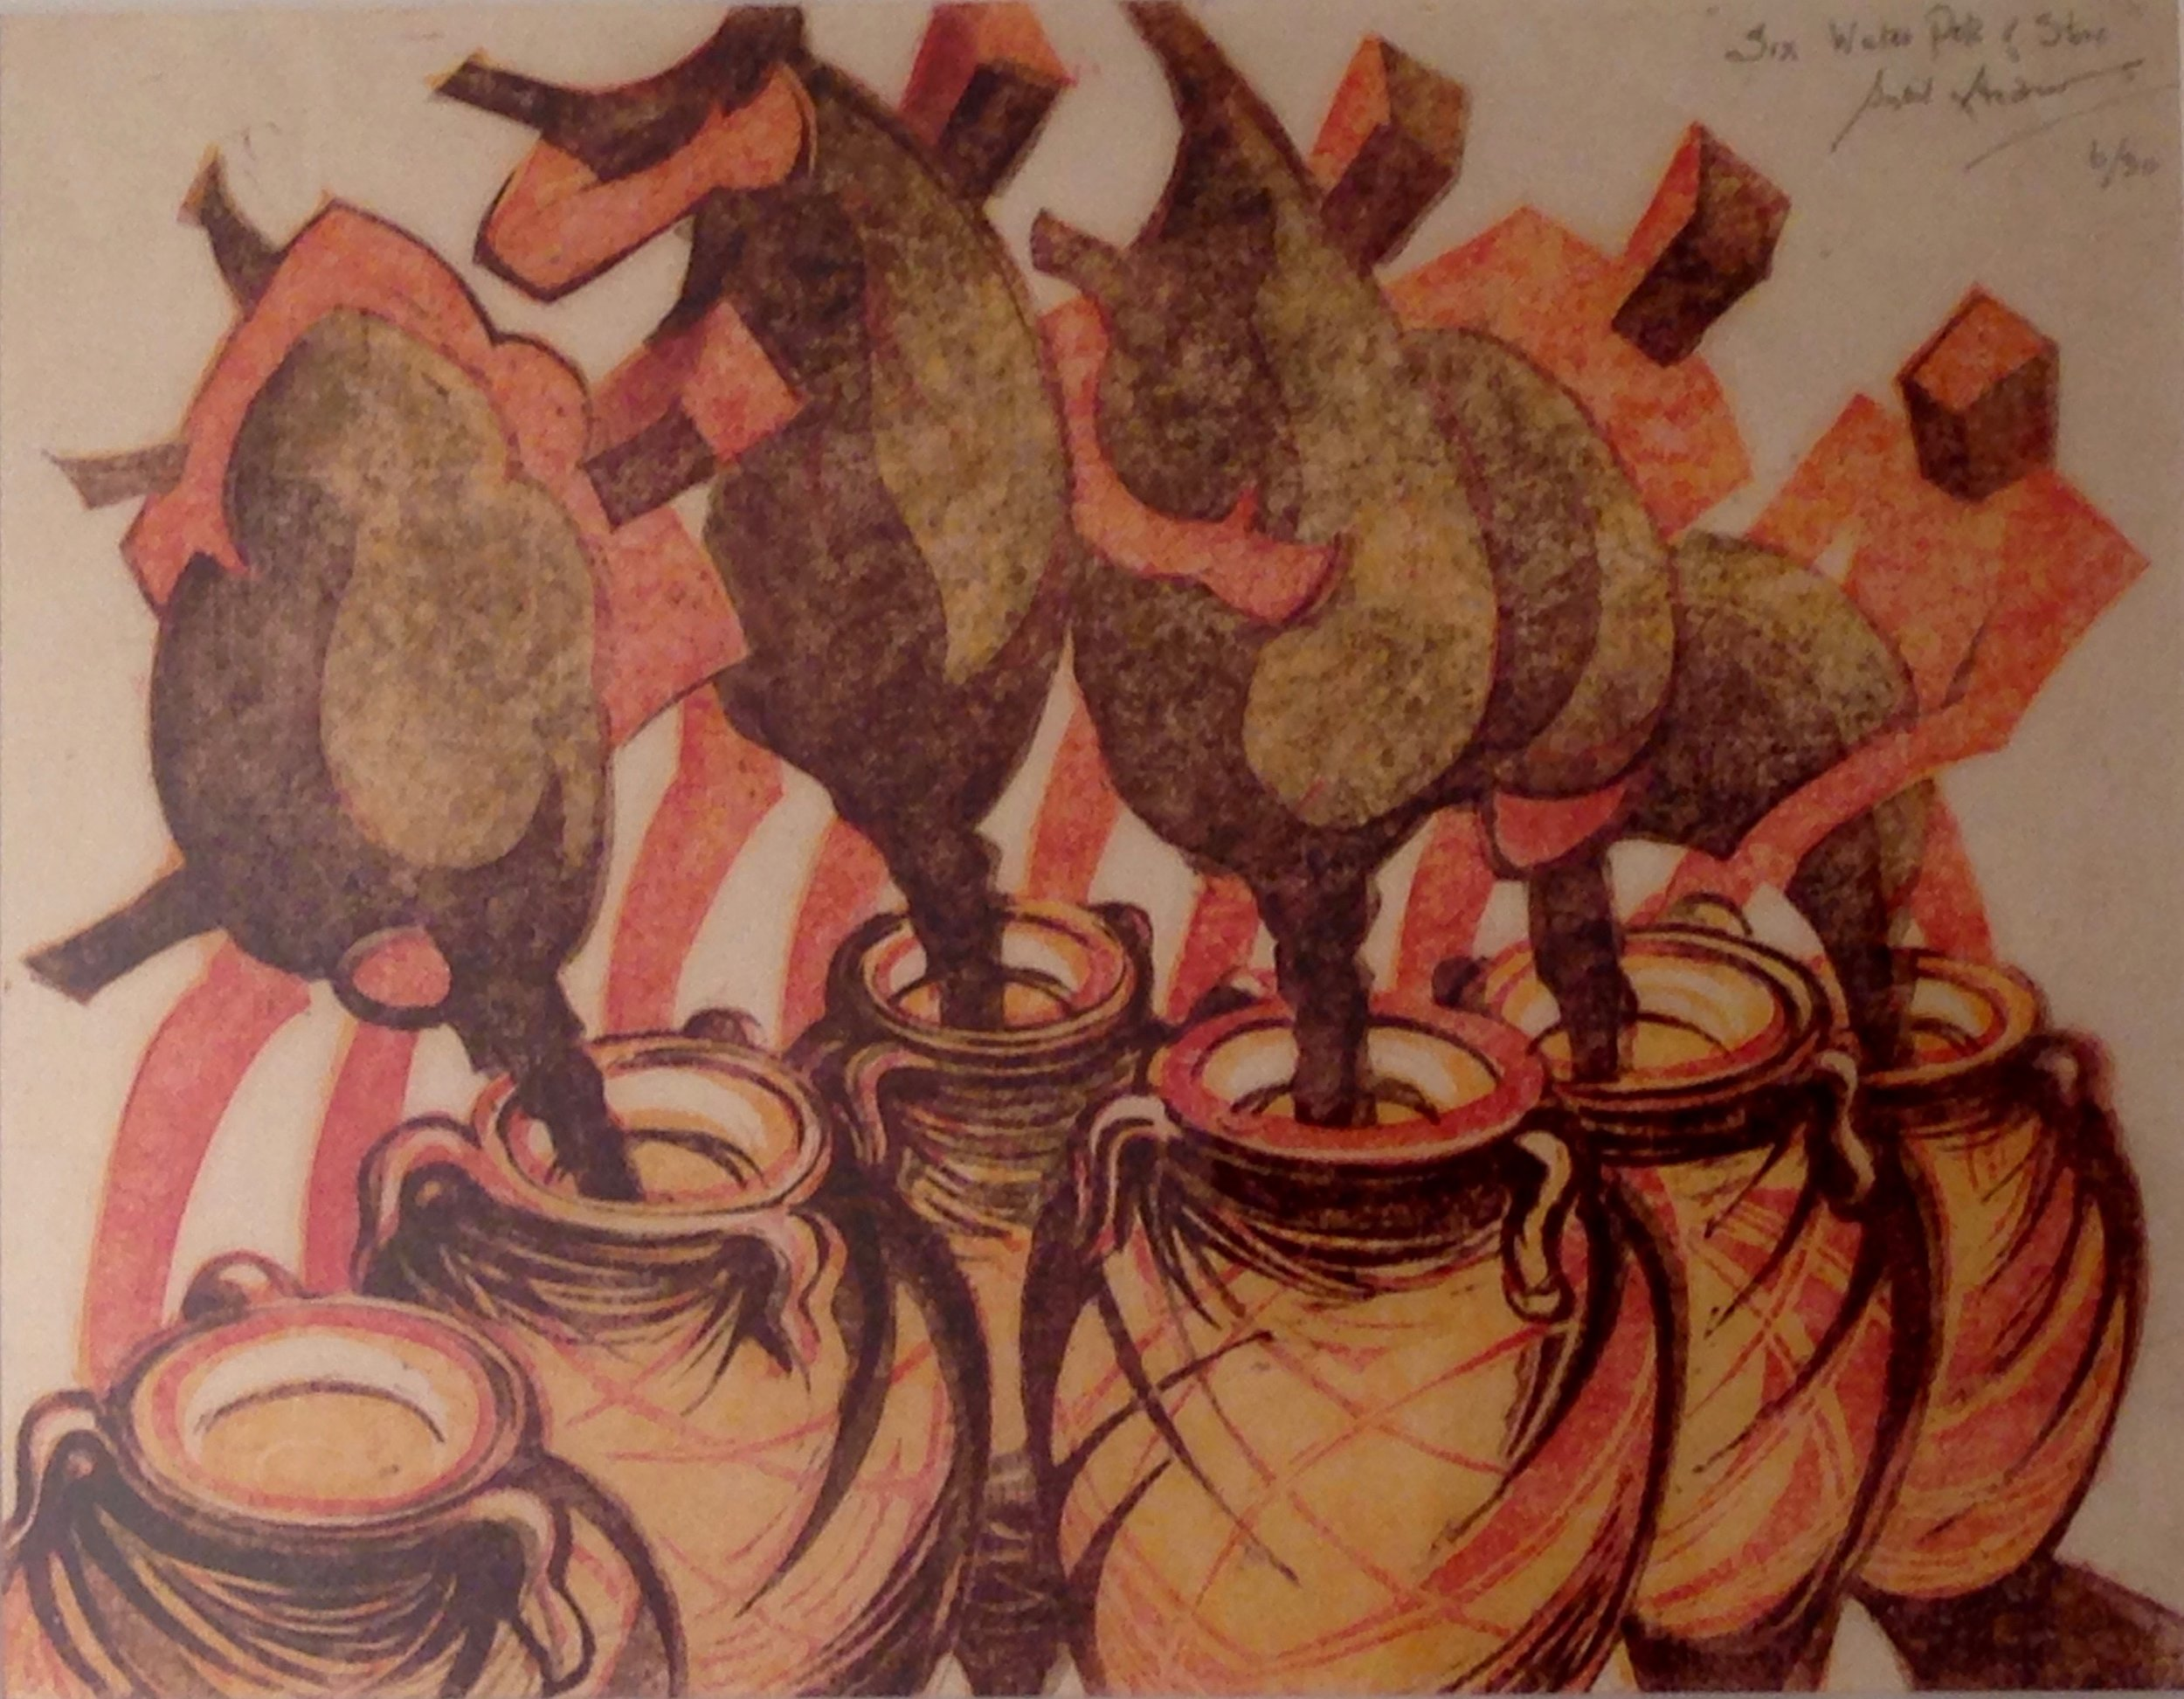 Sybil Andrews, Six Waterpots of Stone, 1988